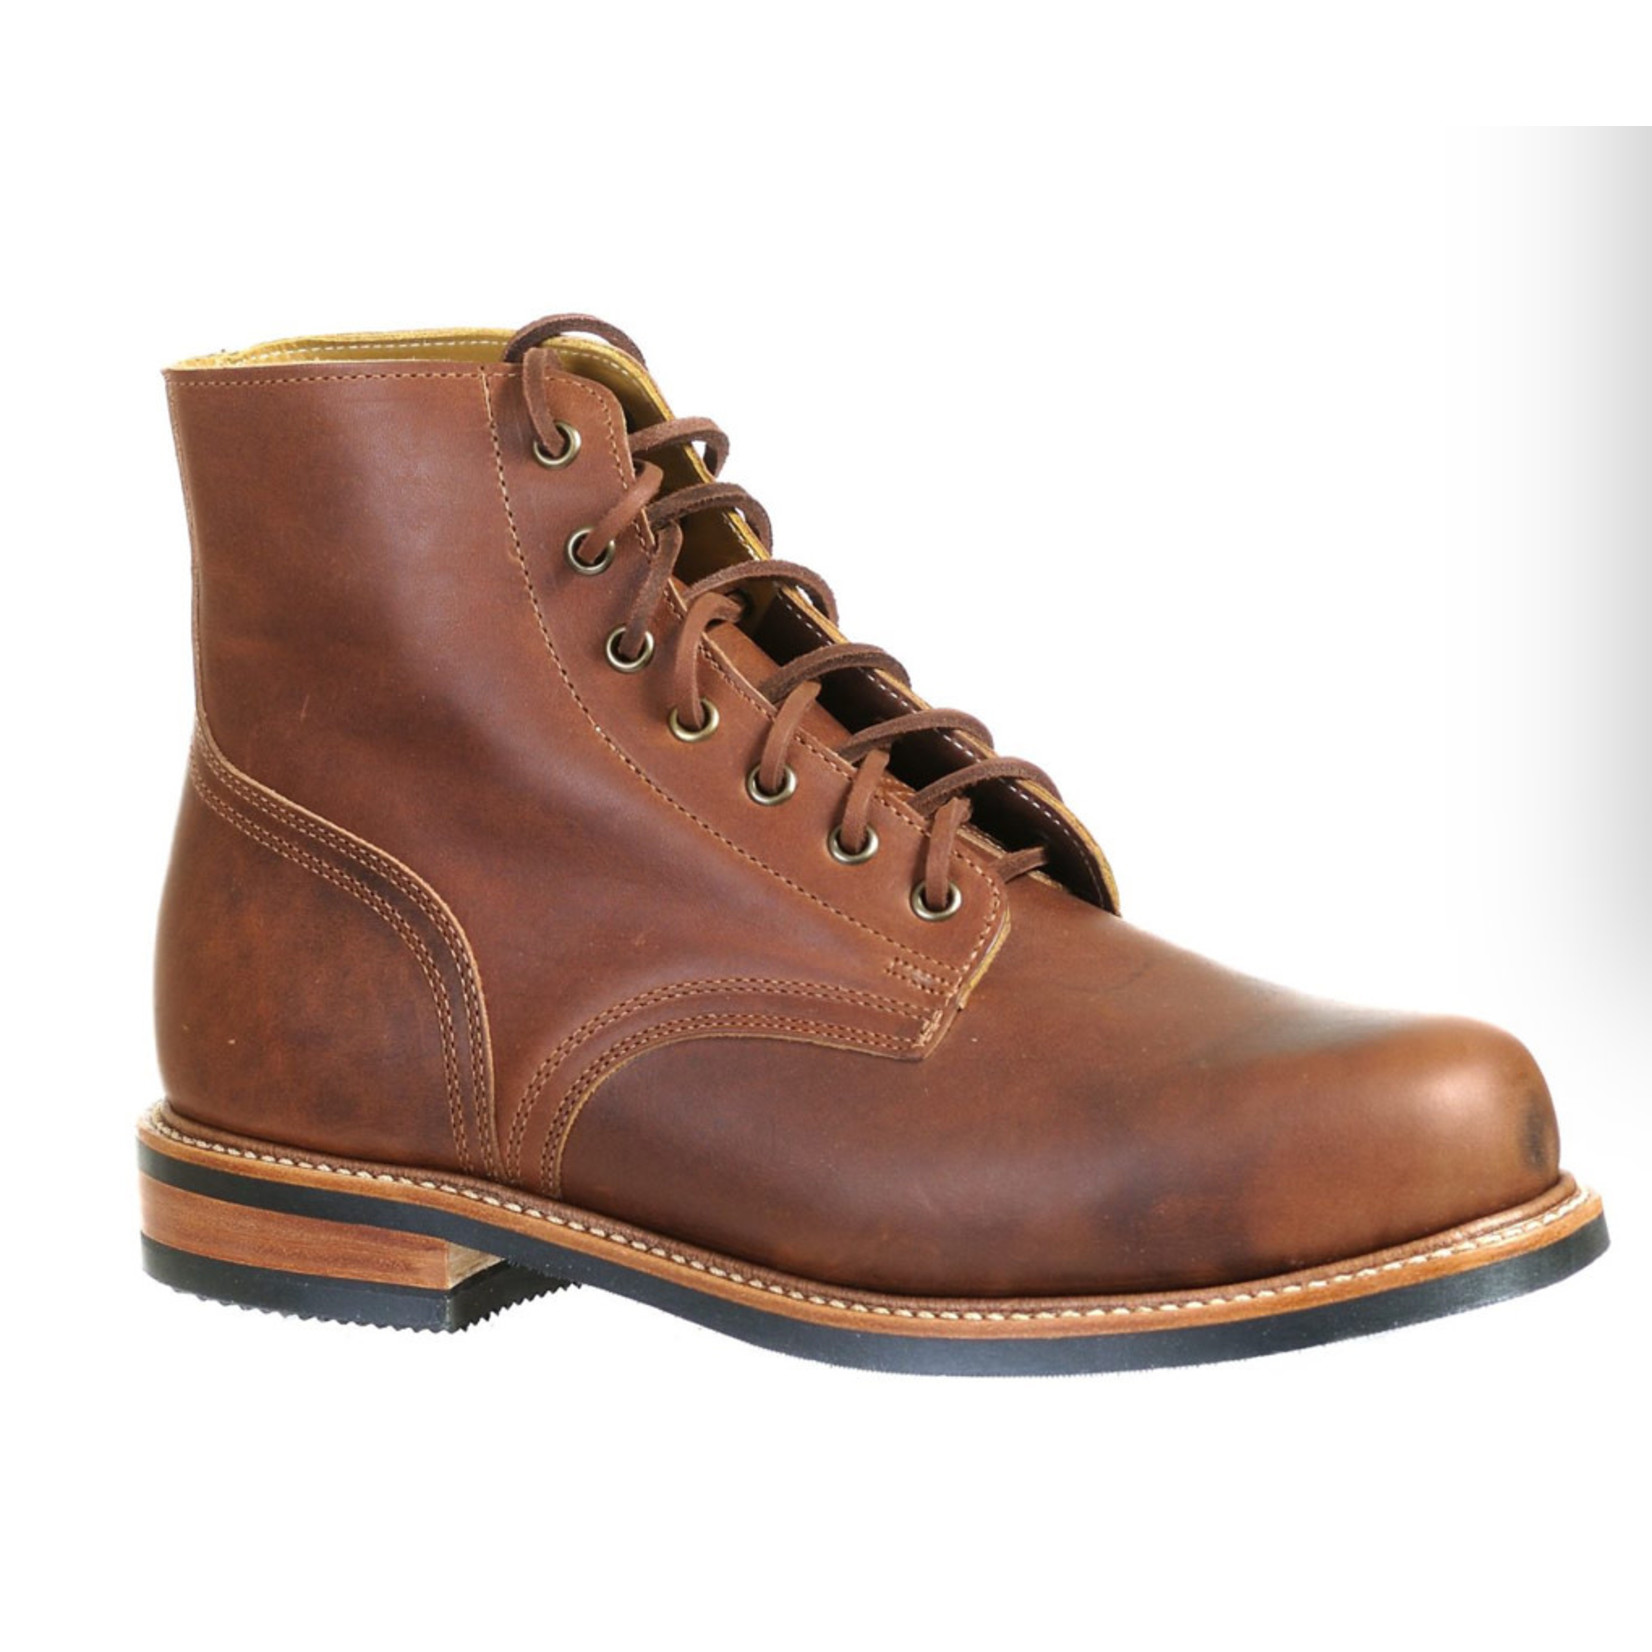 Boulet Boulet 8947 3E Casual Boot Leather Canadian Made Vibram Sole